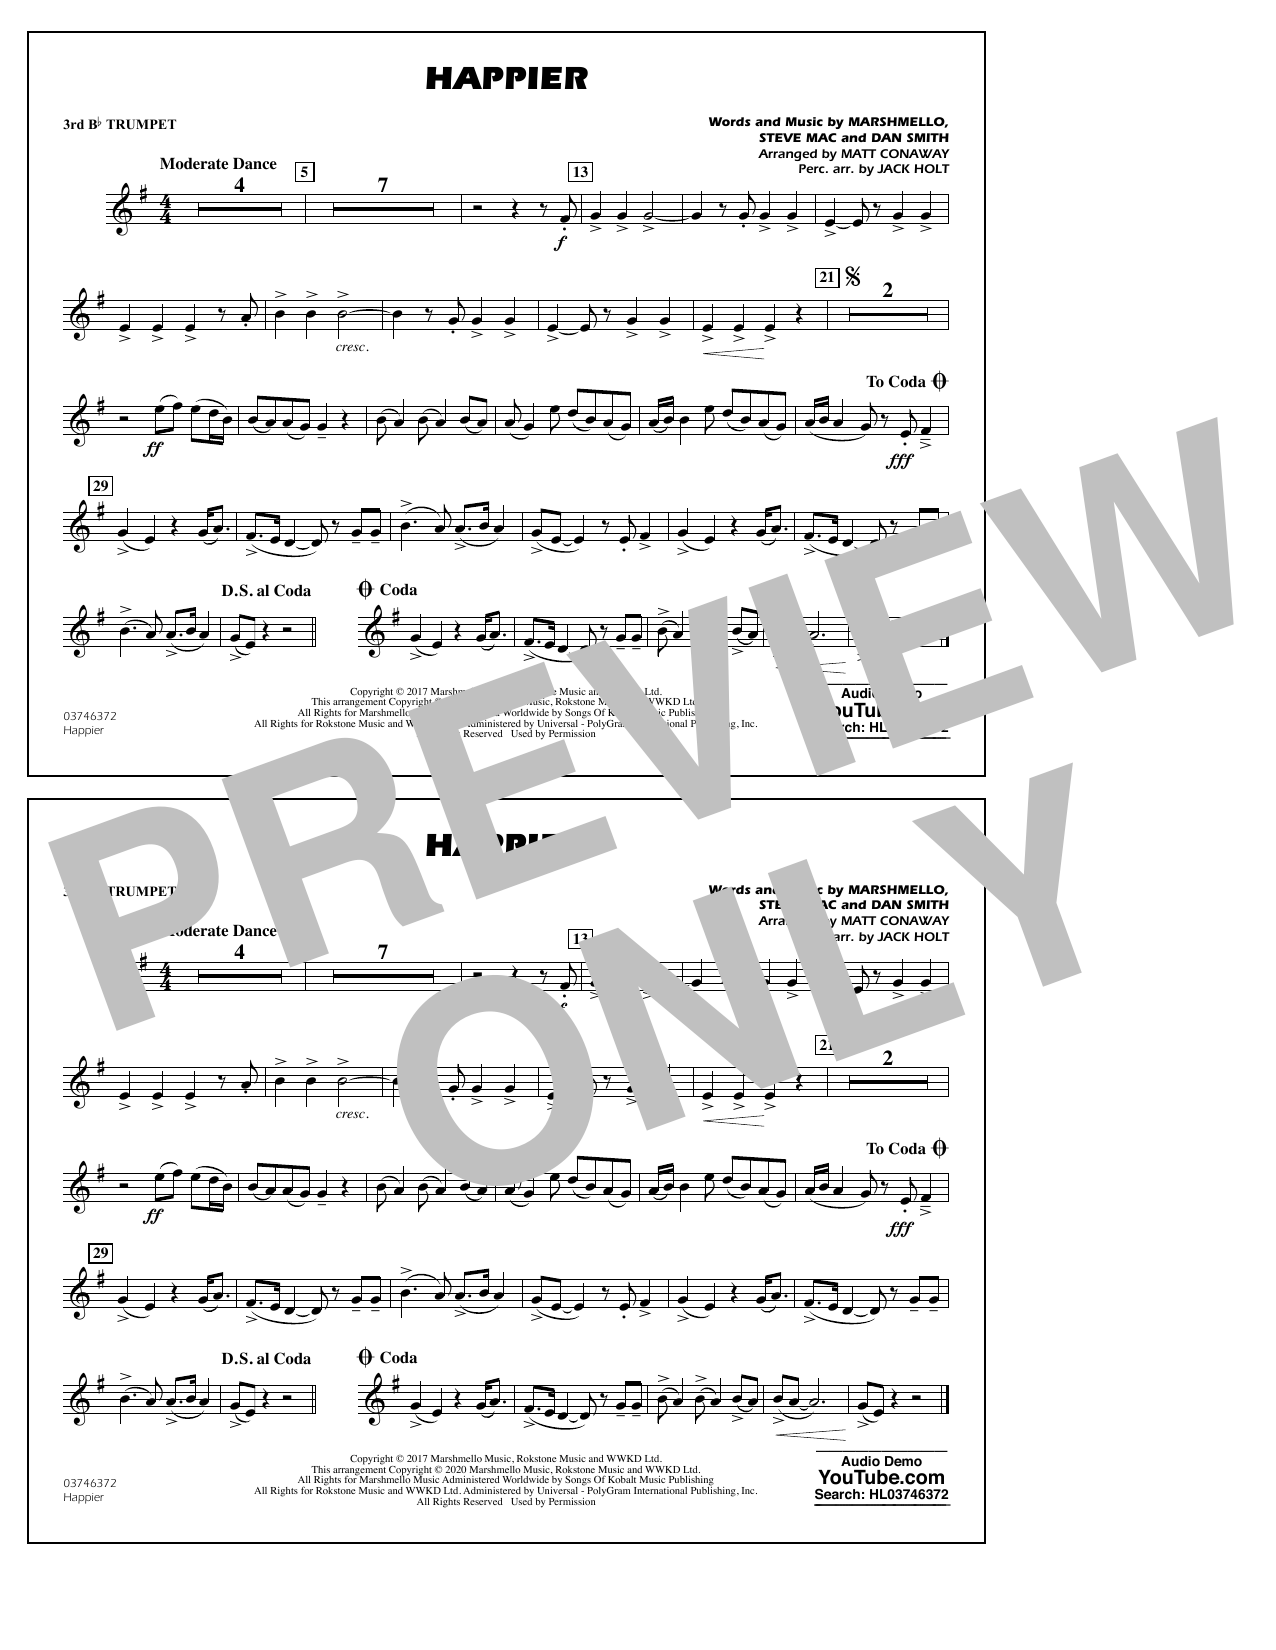 Happier (arr. Matt Conaway and Jack Holt) - 3rd Bb Trumpet Sheet Music